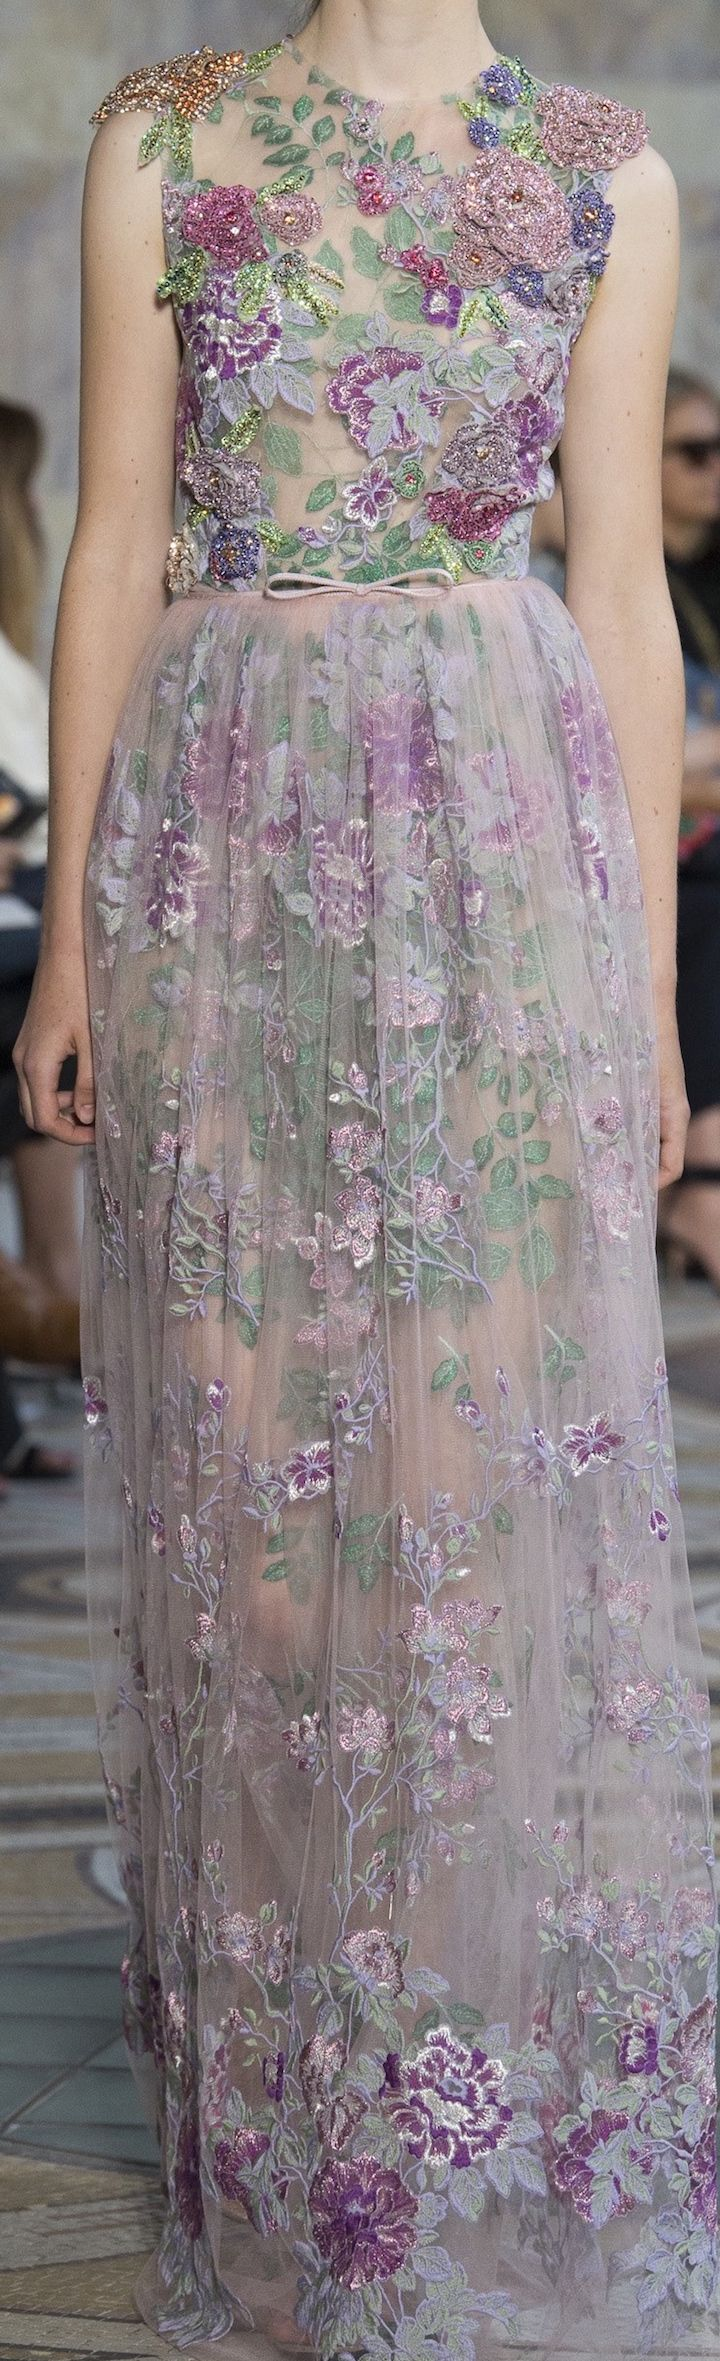 Giambattista Valli Fall 2017 Couture